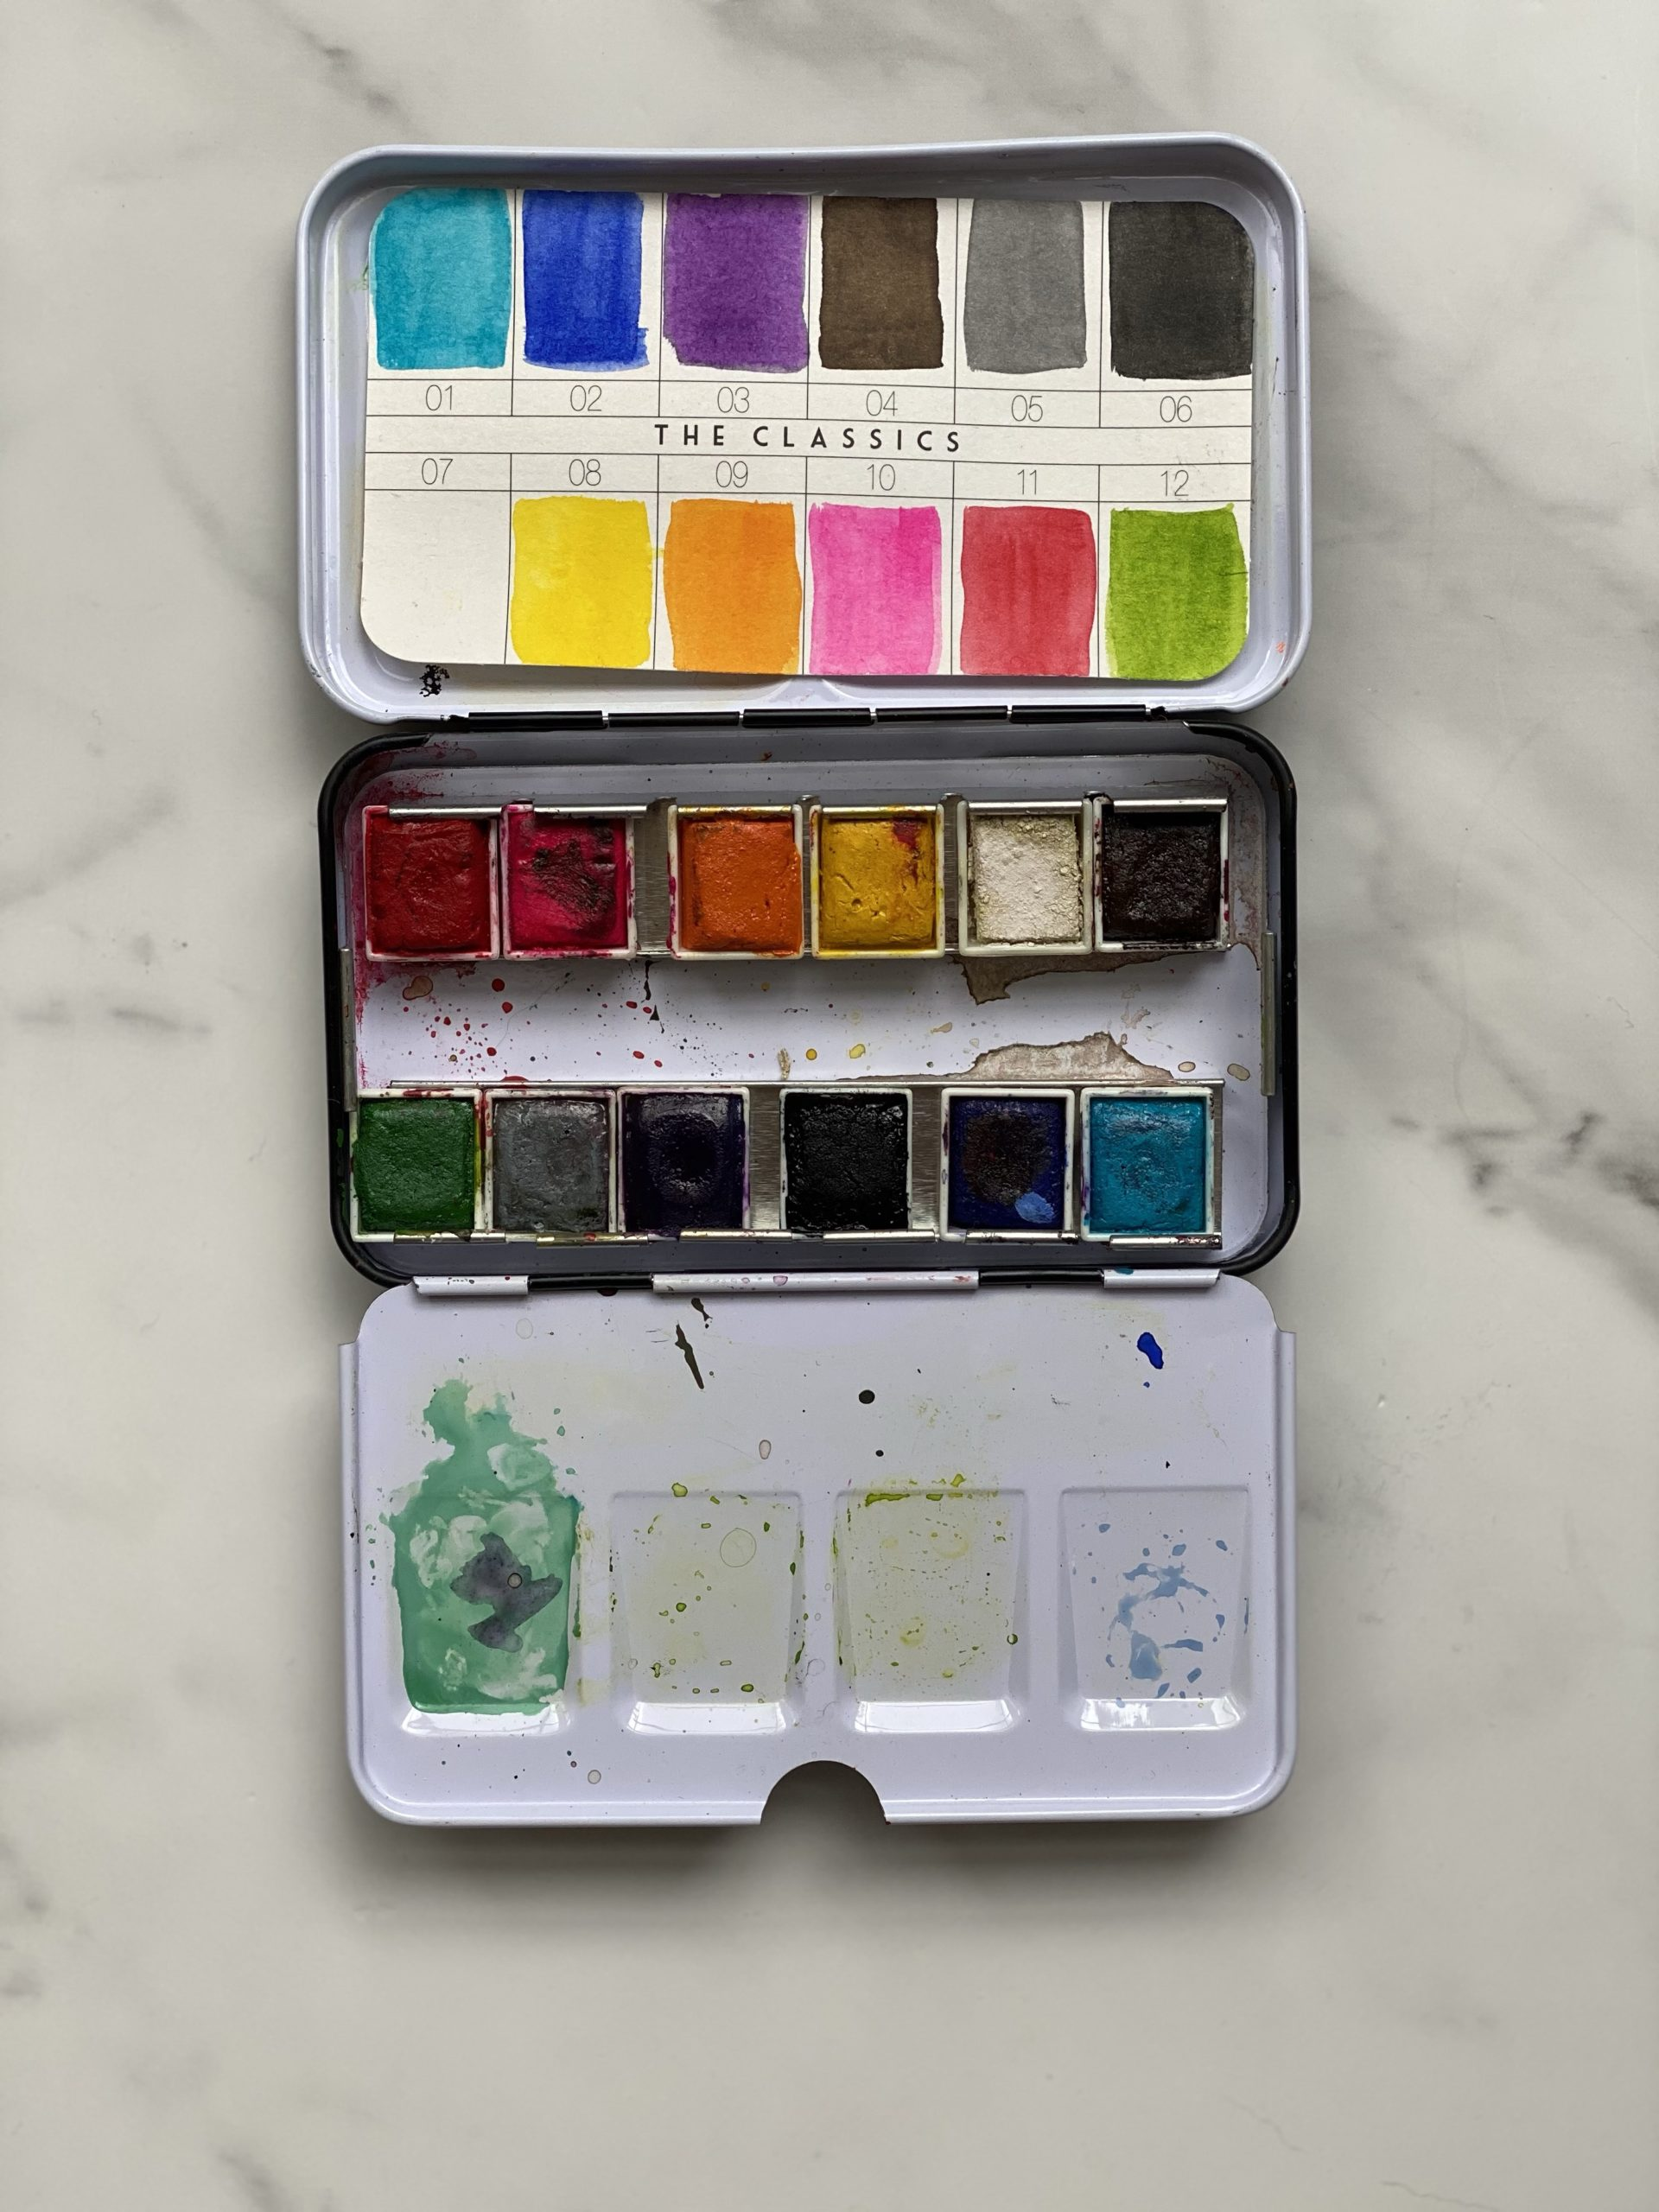 The Classics palette was my first purchase. I let my kids use this one...which is why it's a little wrecked.